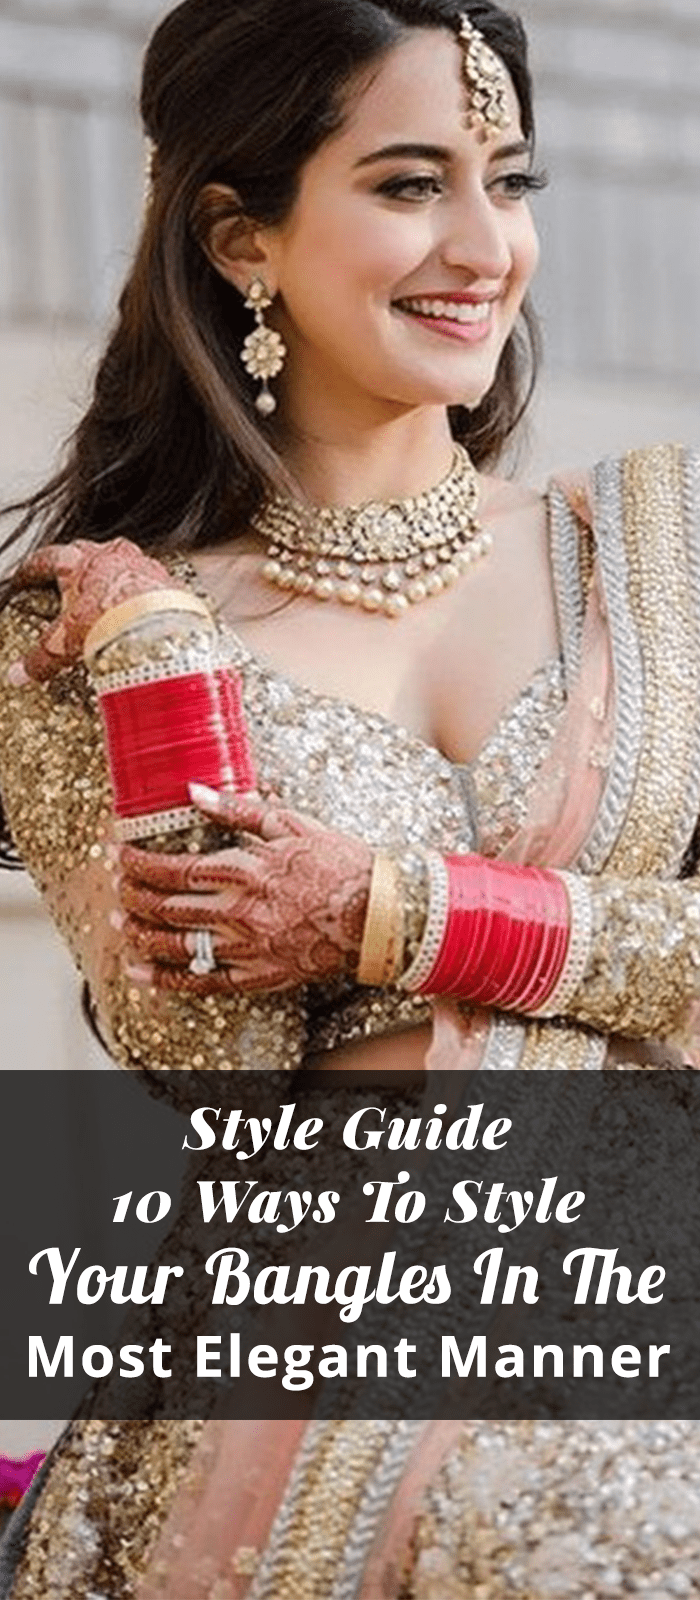 Style Guide – 10 Ways To Style Your Bangles In The Most Elegant Manner